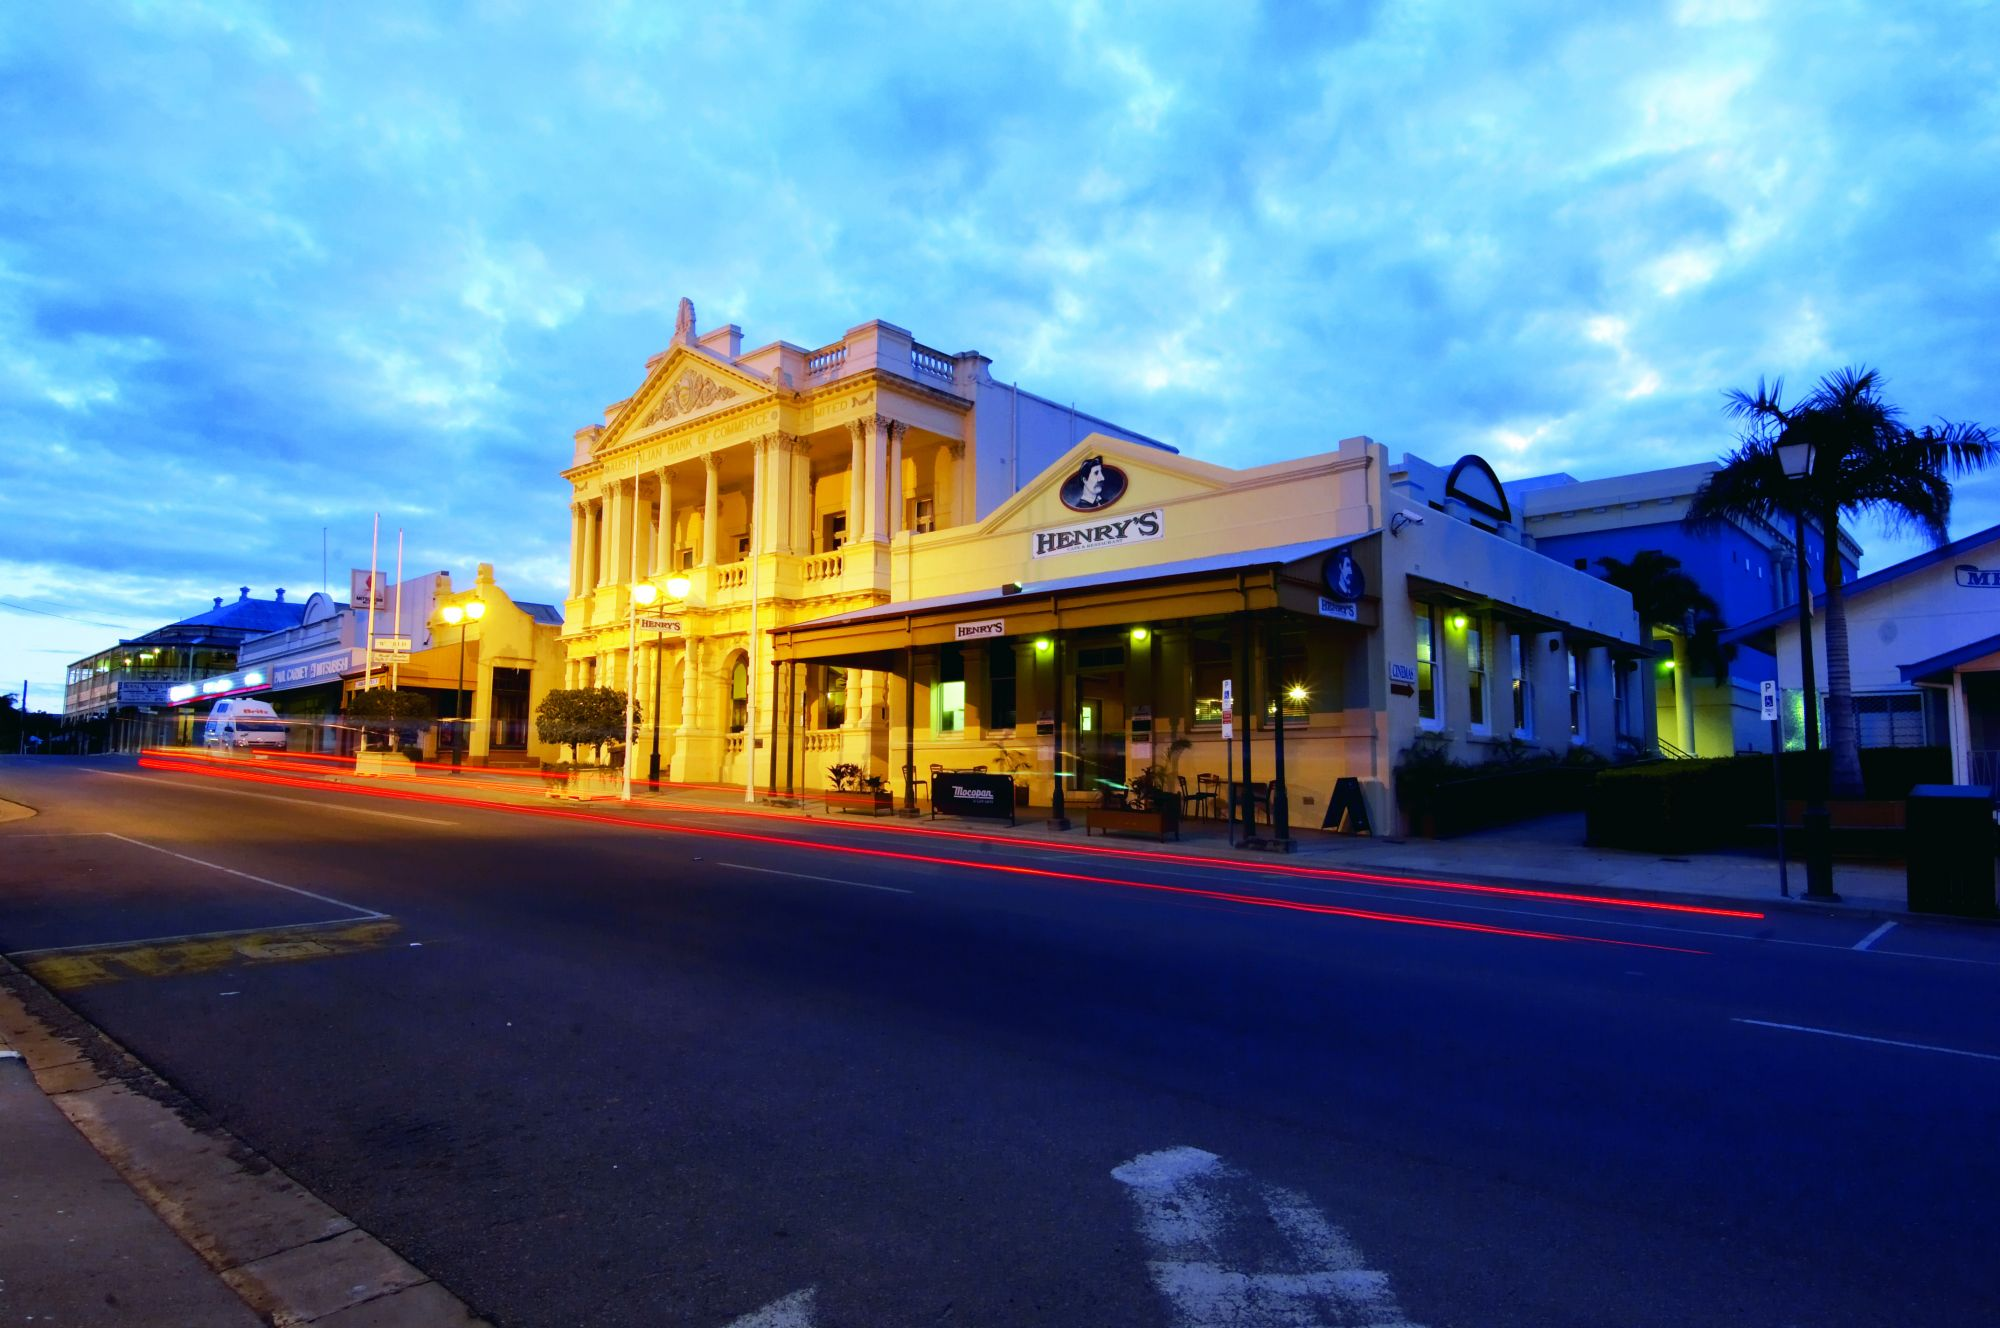 Historical Charters Towers